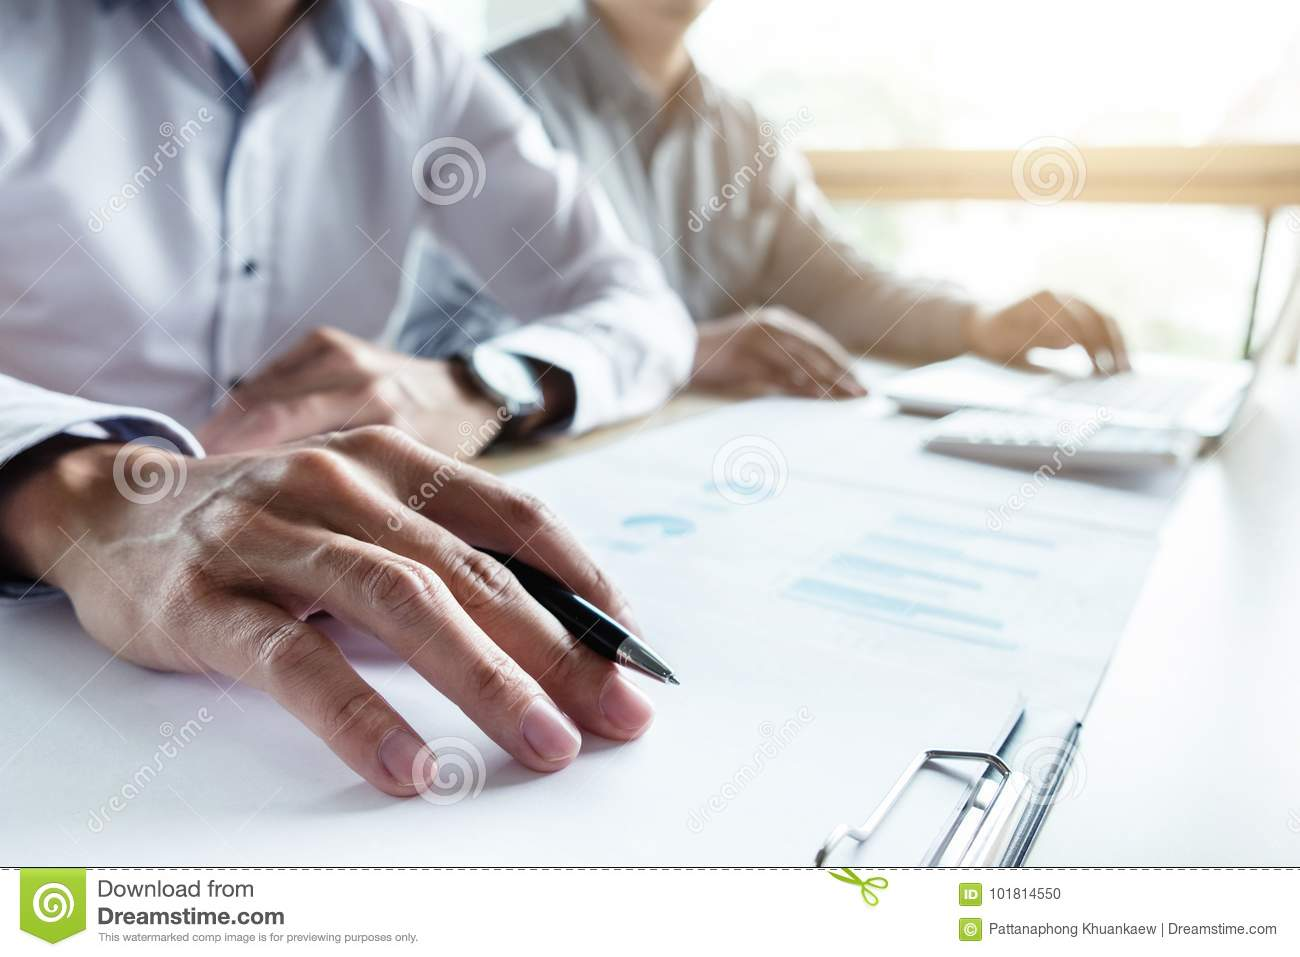 Man sign a home insurance policy on home loans, Agent holds loan